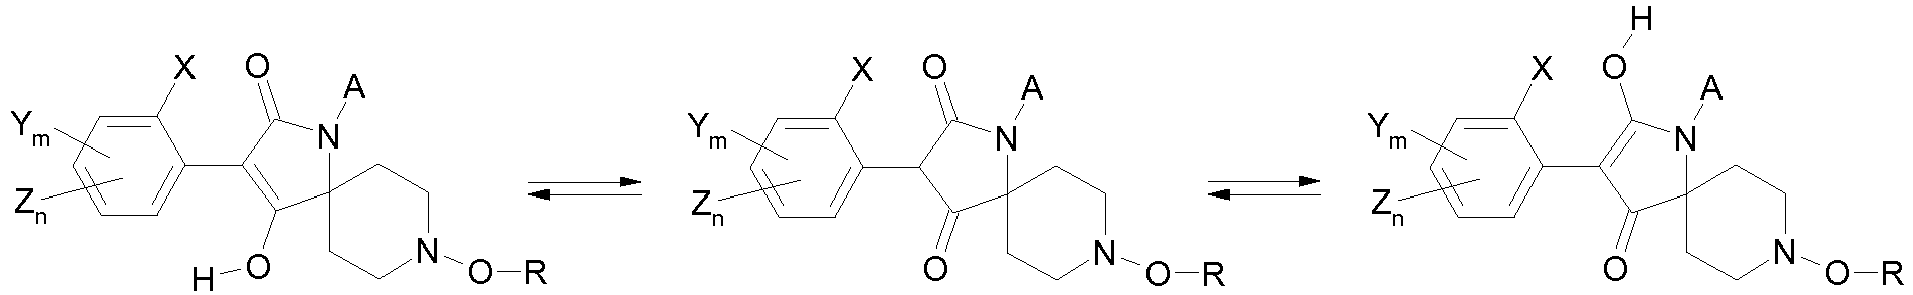 SPIROHETEROCYCLIC N-OXYPIPERIDINES AS PESTICIDES - Patent 2369934